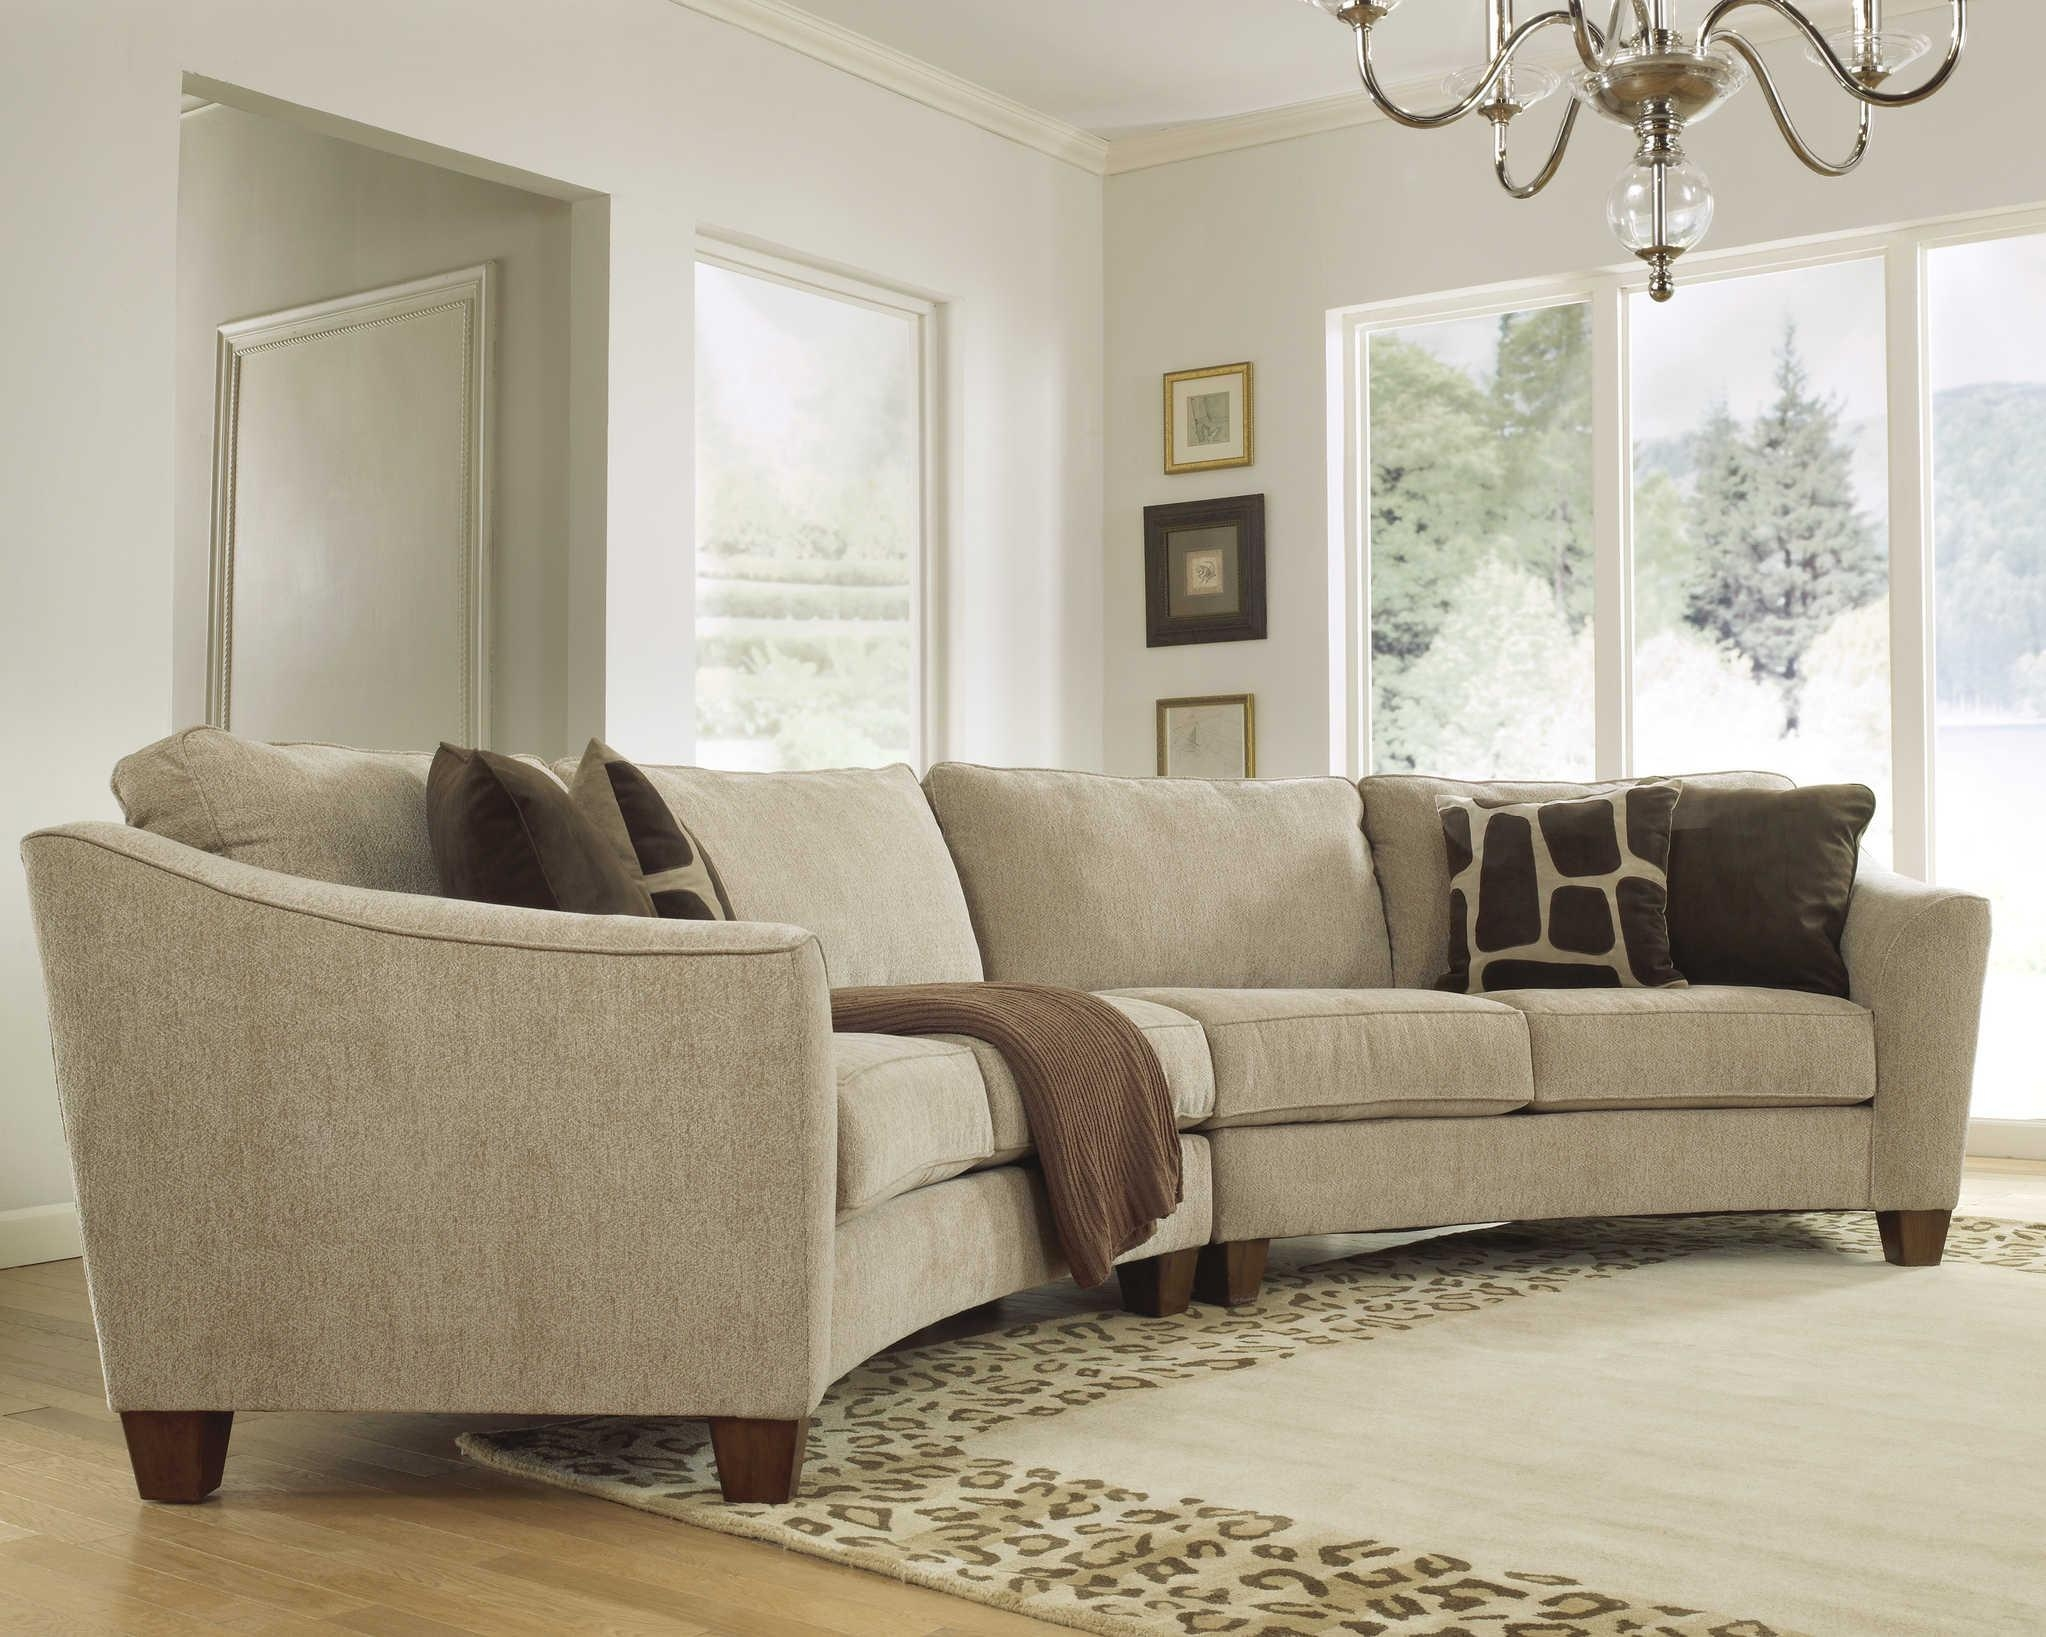 Furniture: Alluring Unique Curved Couches With Classic Design Home With Regard To Semi Circular Sectional Sofas (Image 6 of 20)